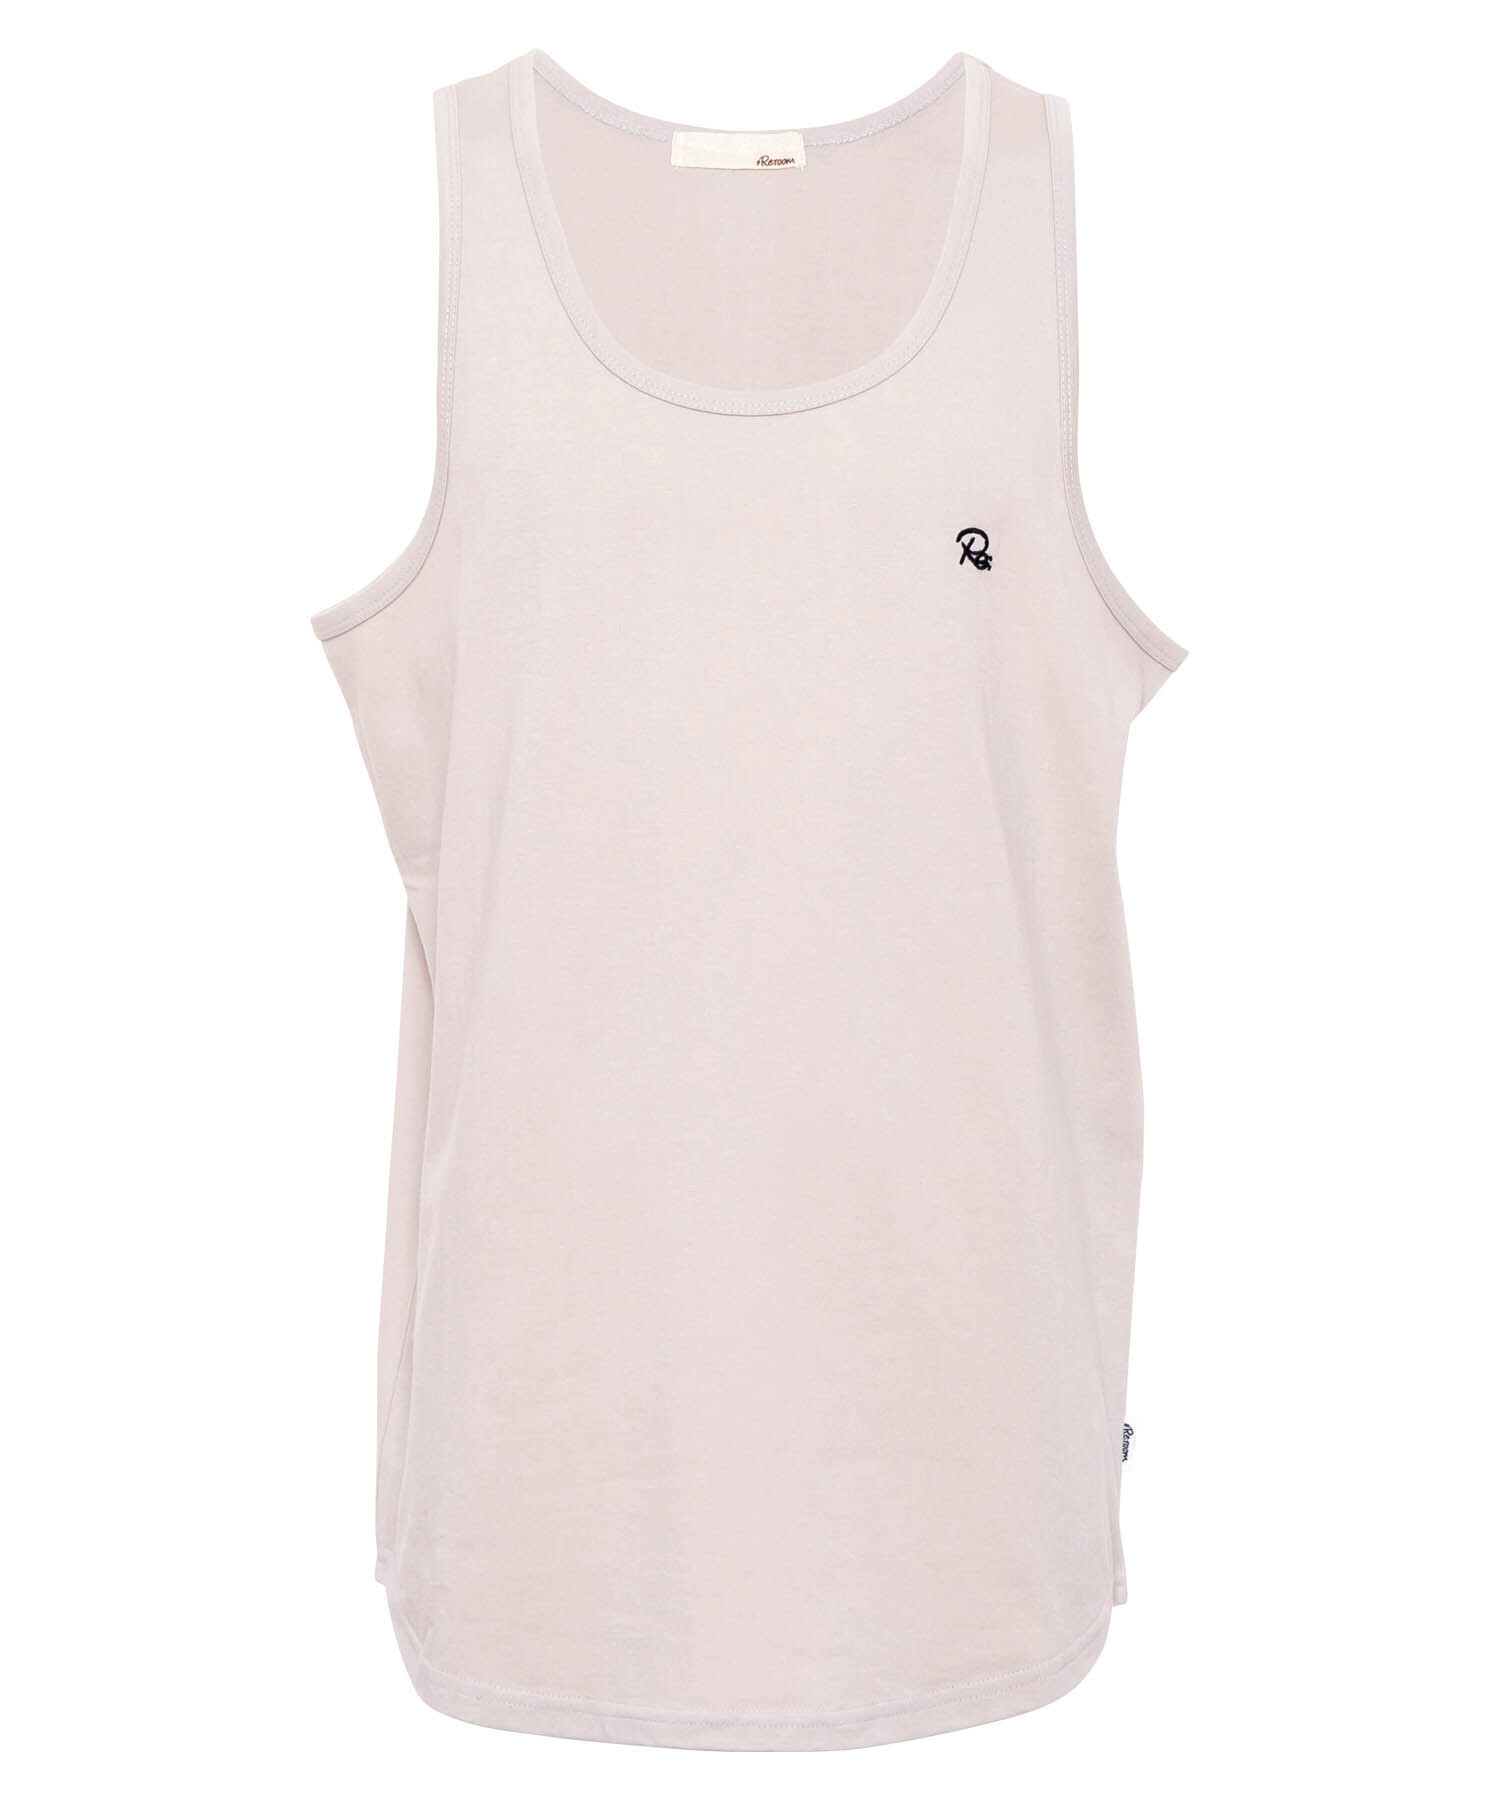 ONE POINT ICON PLAIN TANK TOP[REC384]